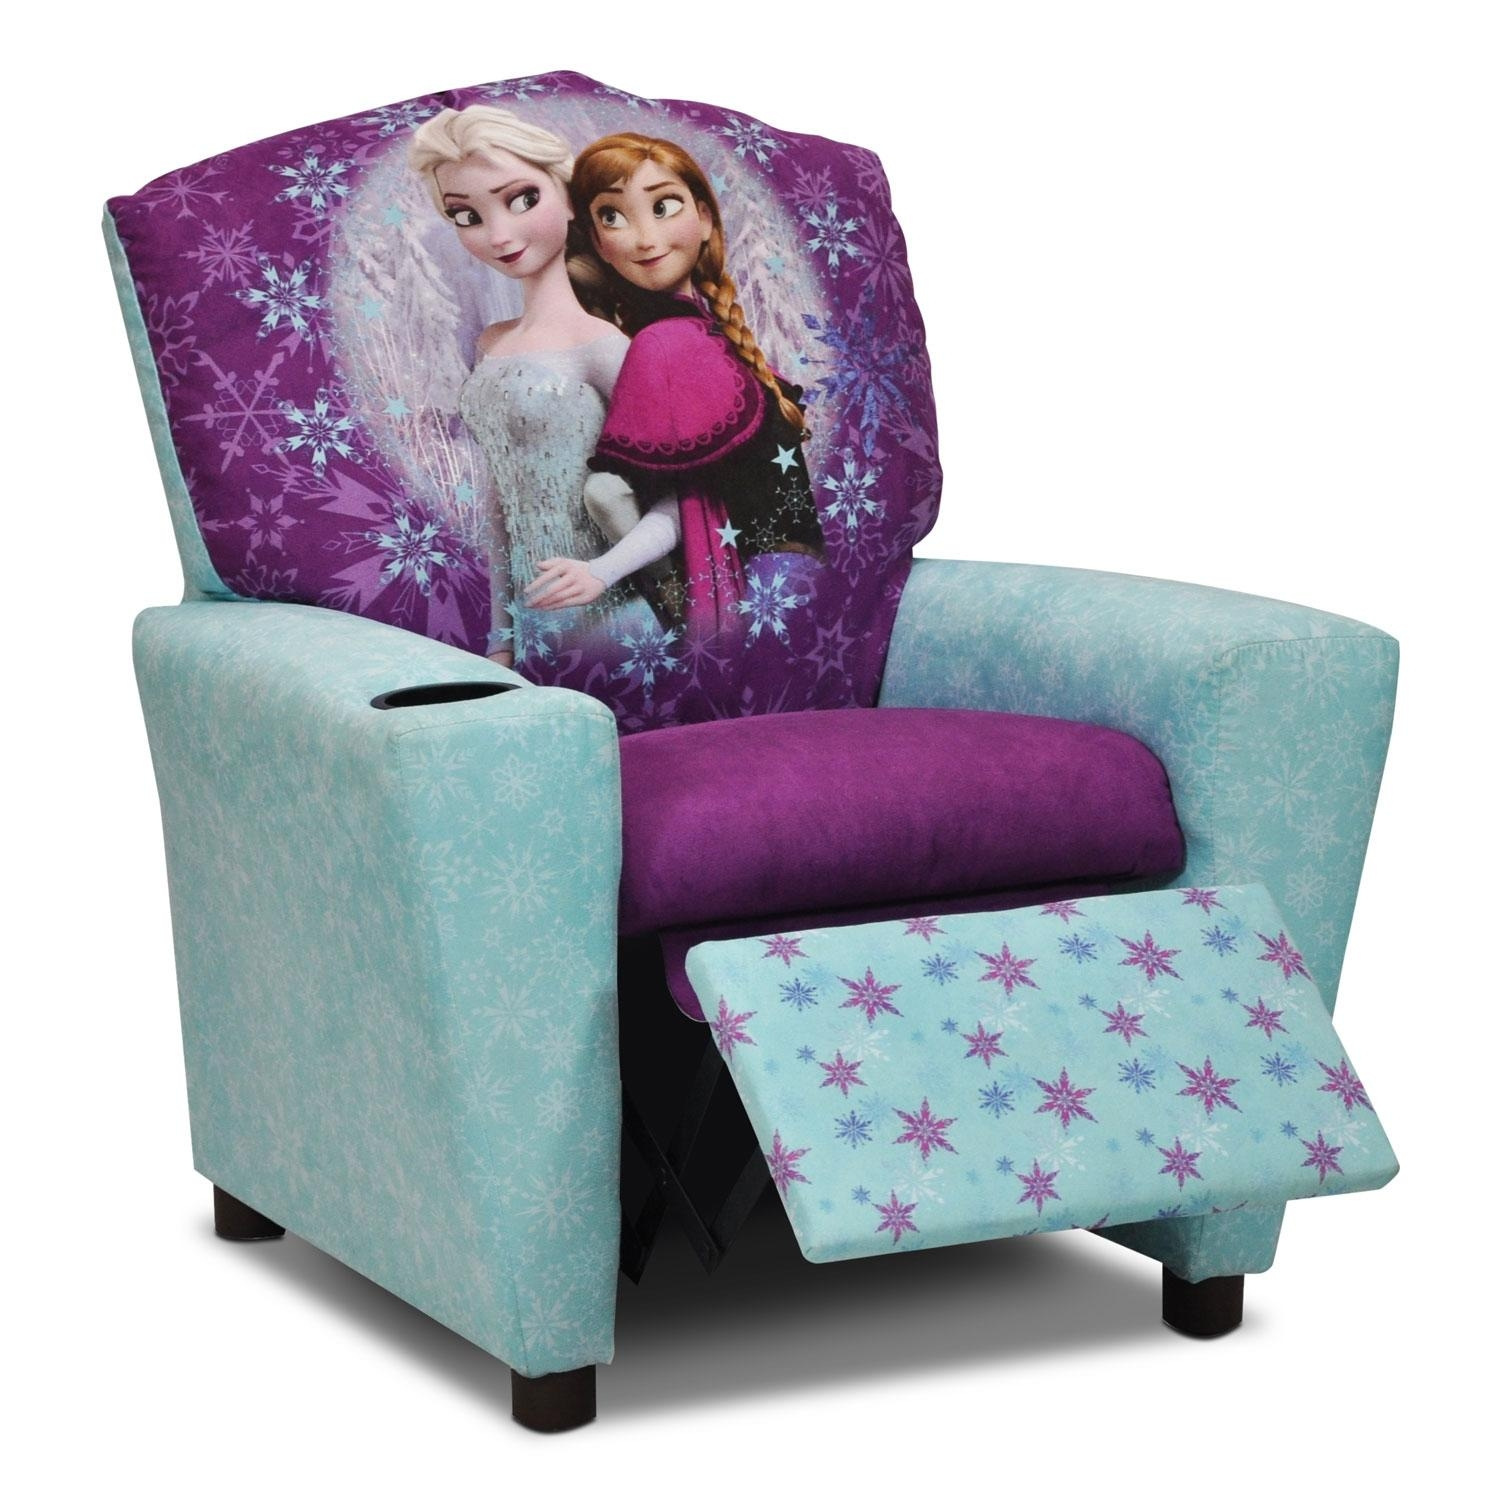 Sofas Center : Rare Kids Sofa Chair Pictures Design Chairs Intended For Childrens Sofa Chairs (Image 17 of 20)